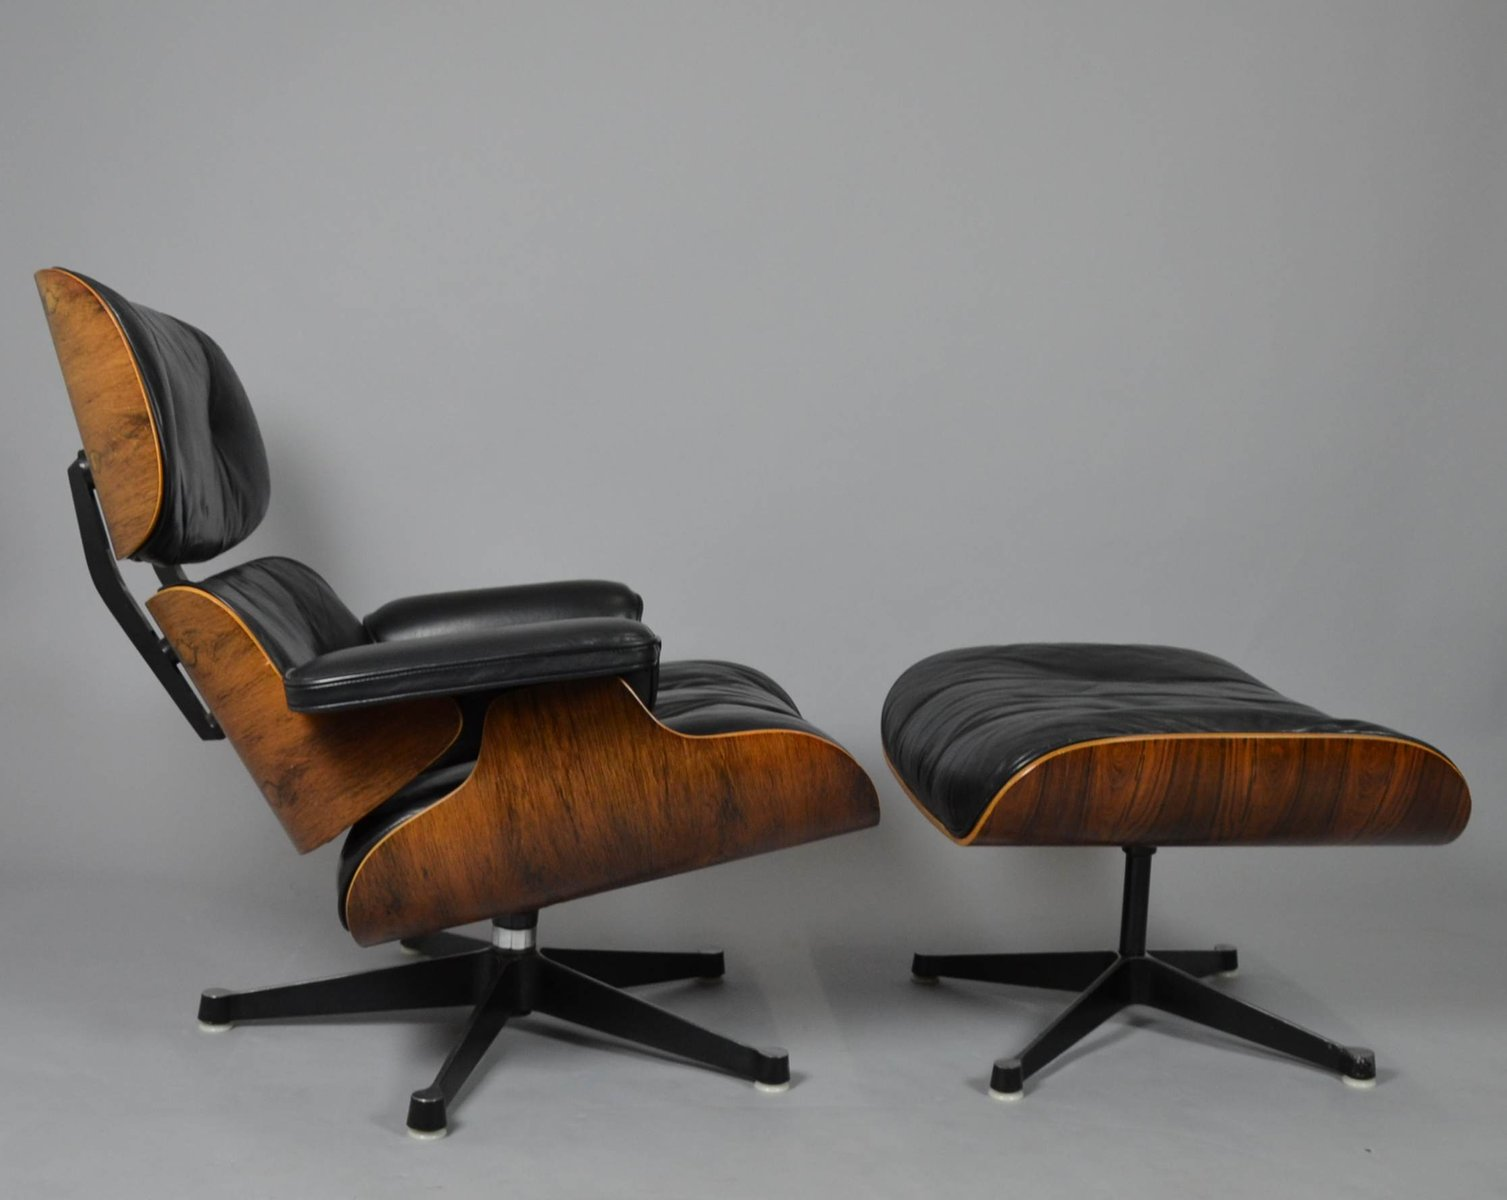 lounge chair ottoman by charles ray eames for vitra 1960s for sale at pamono. Black Bedroom Furniture Sets. Home Design Ideas